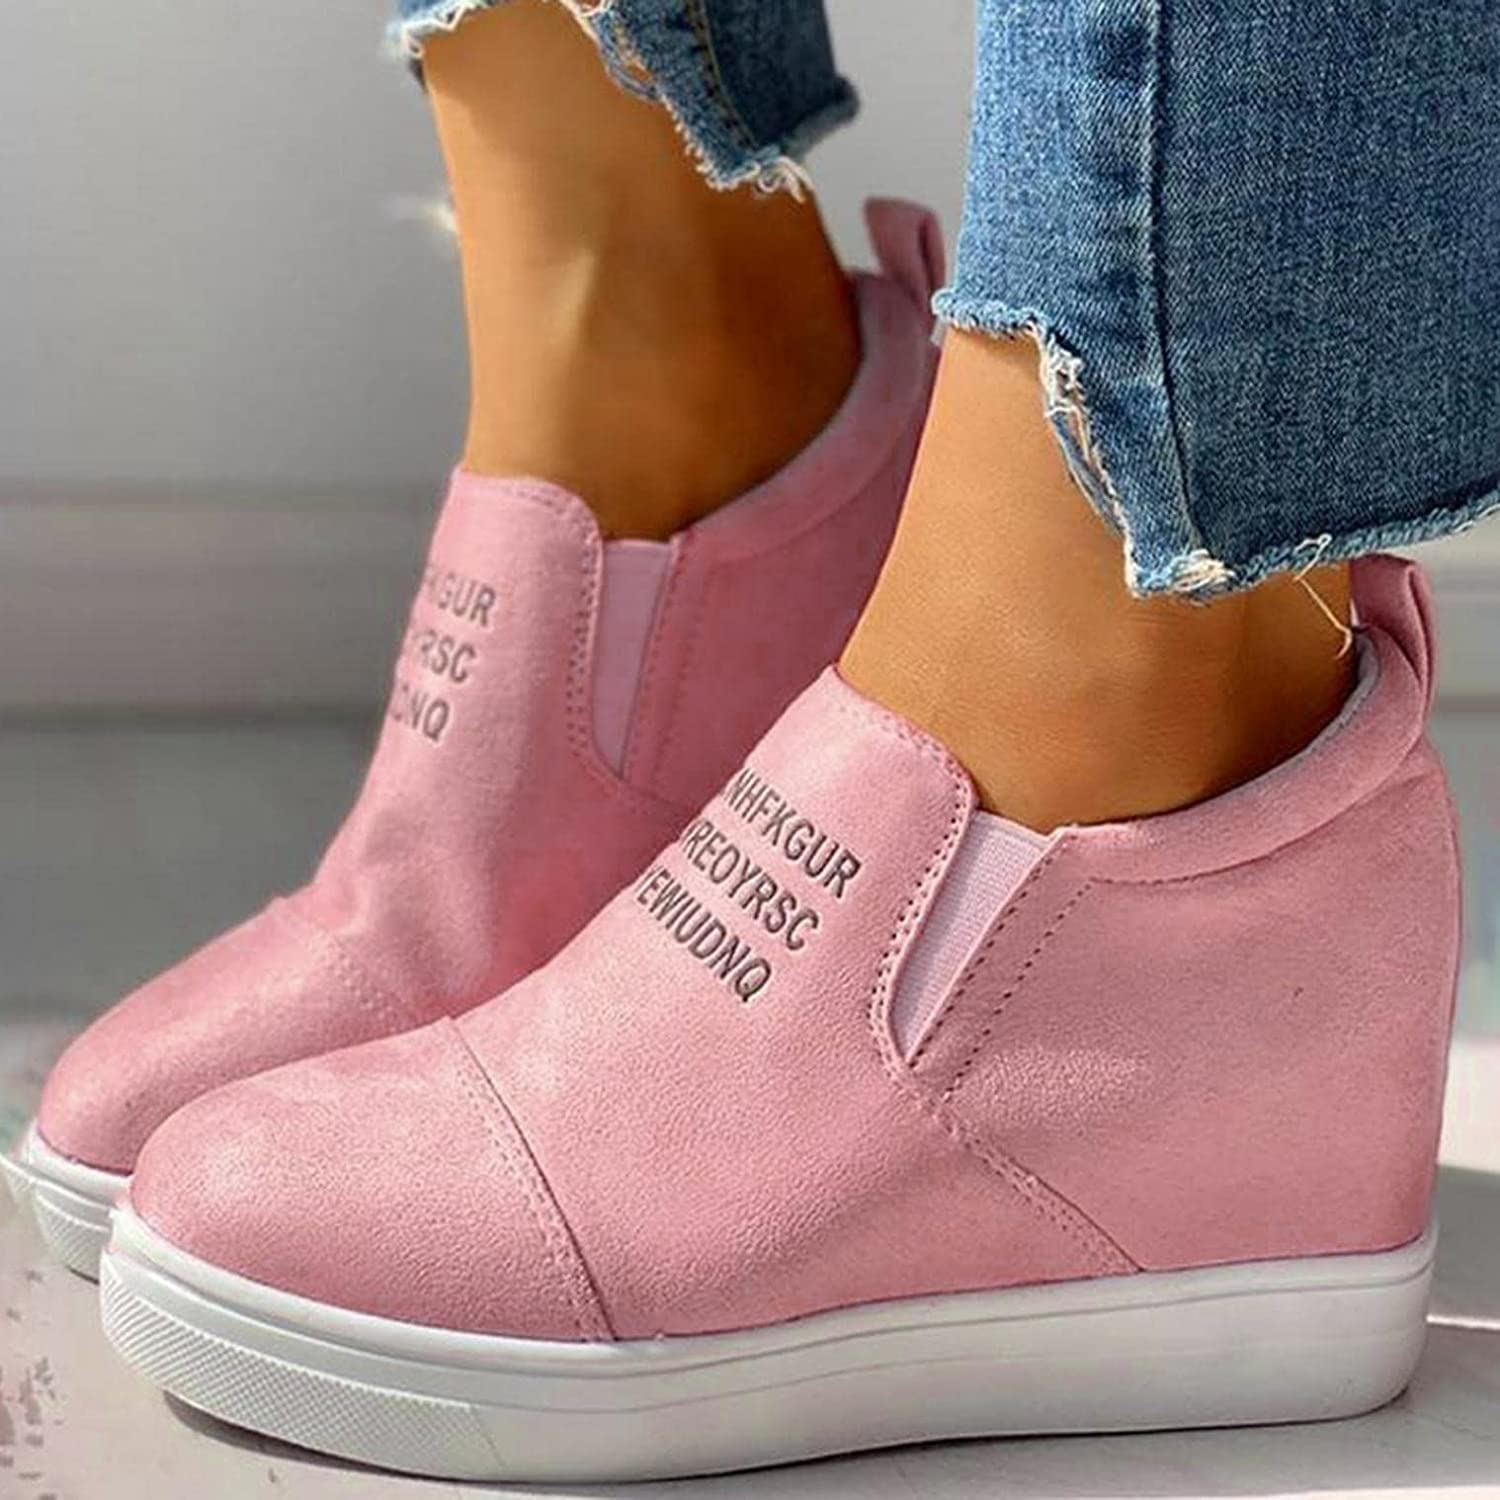 AODONG Walking Shoes for Women Casual Wedges Shoes Ankle Boots Round Toe Breathable Mesh Running Shoes Sneakers for Women